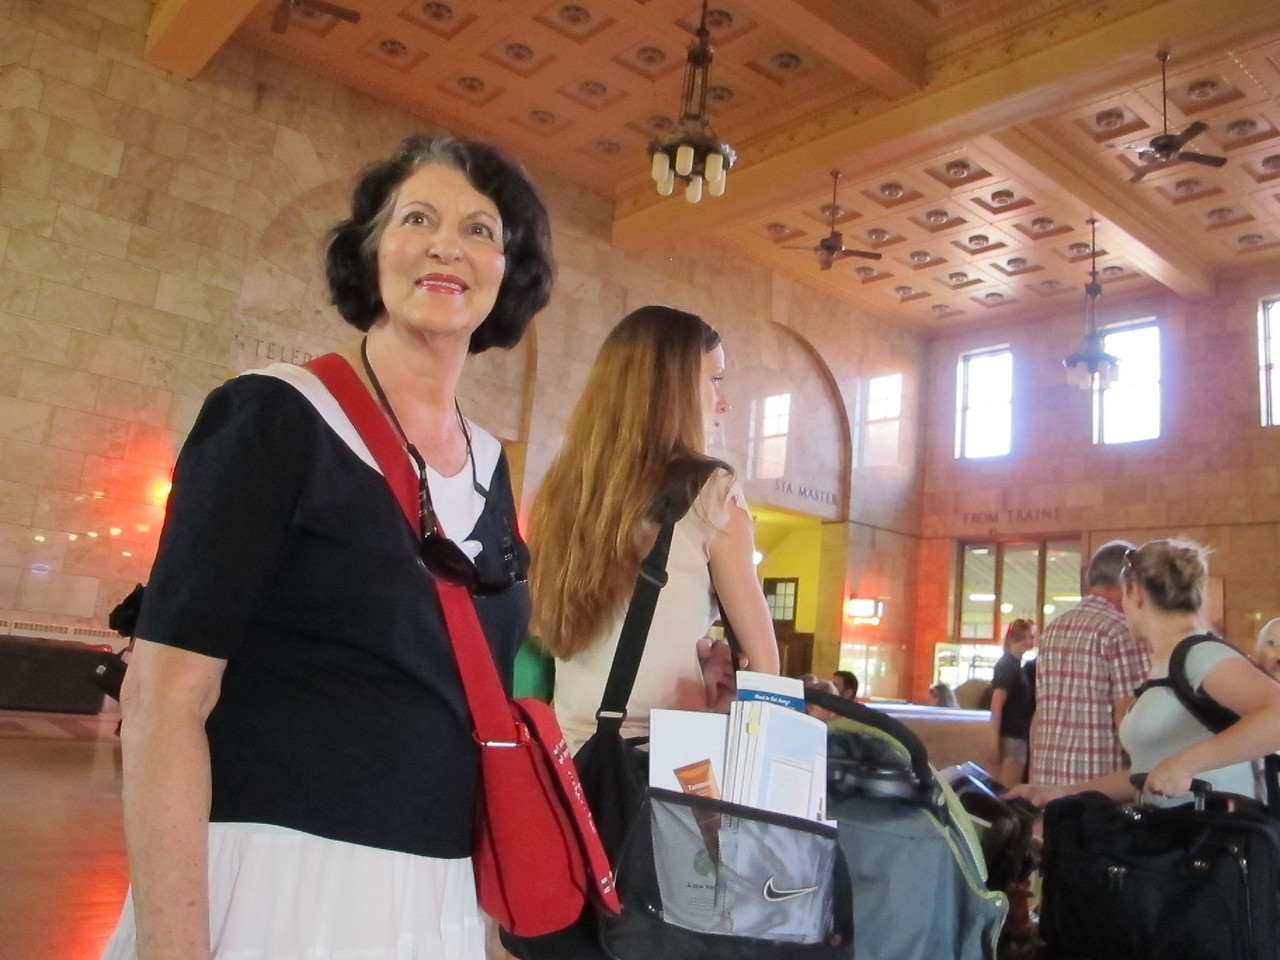 Saturday, July 2, 2011. Mom about to board a train from Portland to Seattle. Photo taken in the Portland train station.